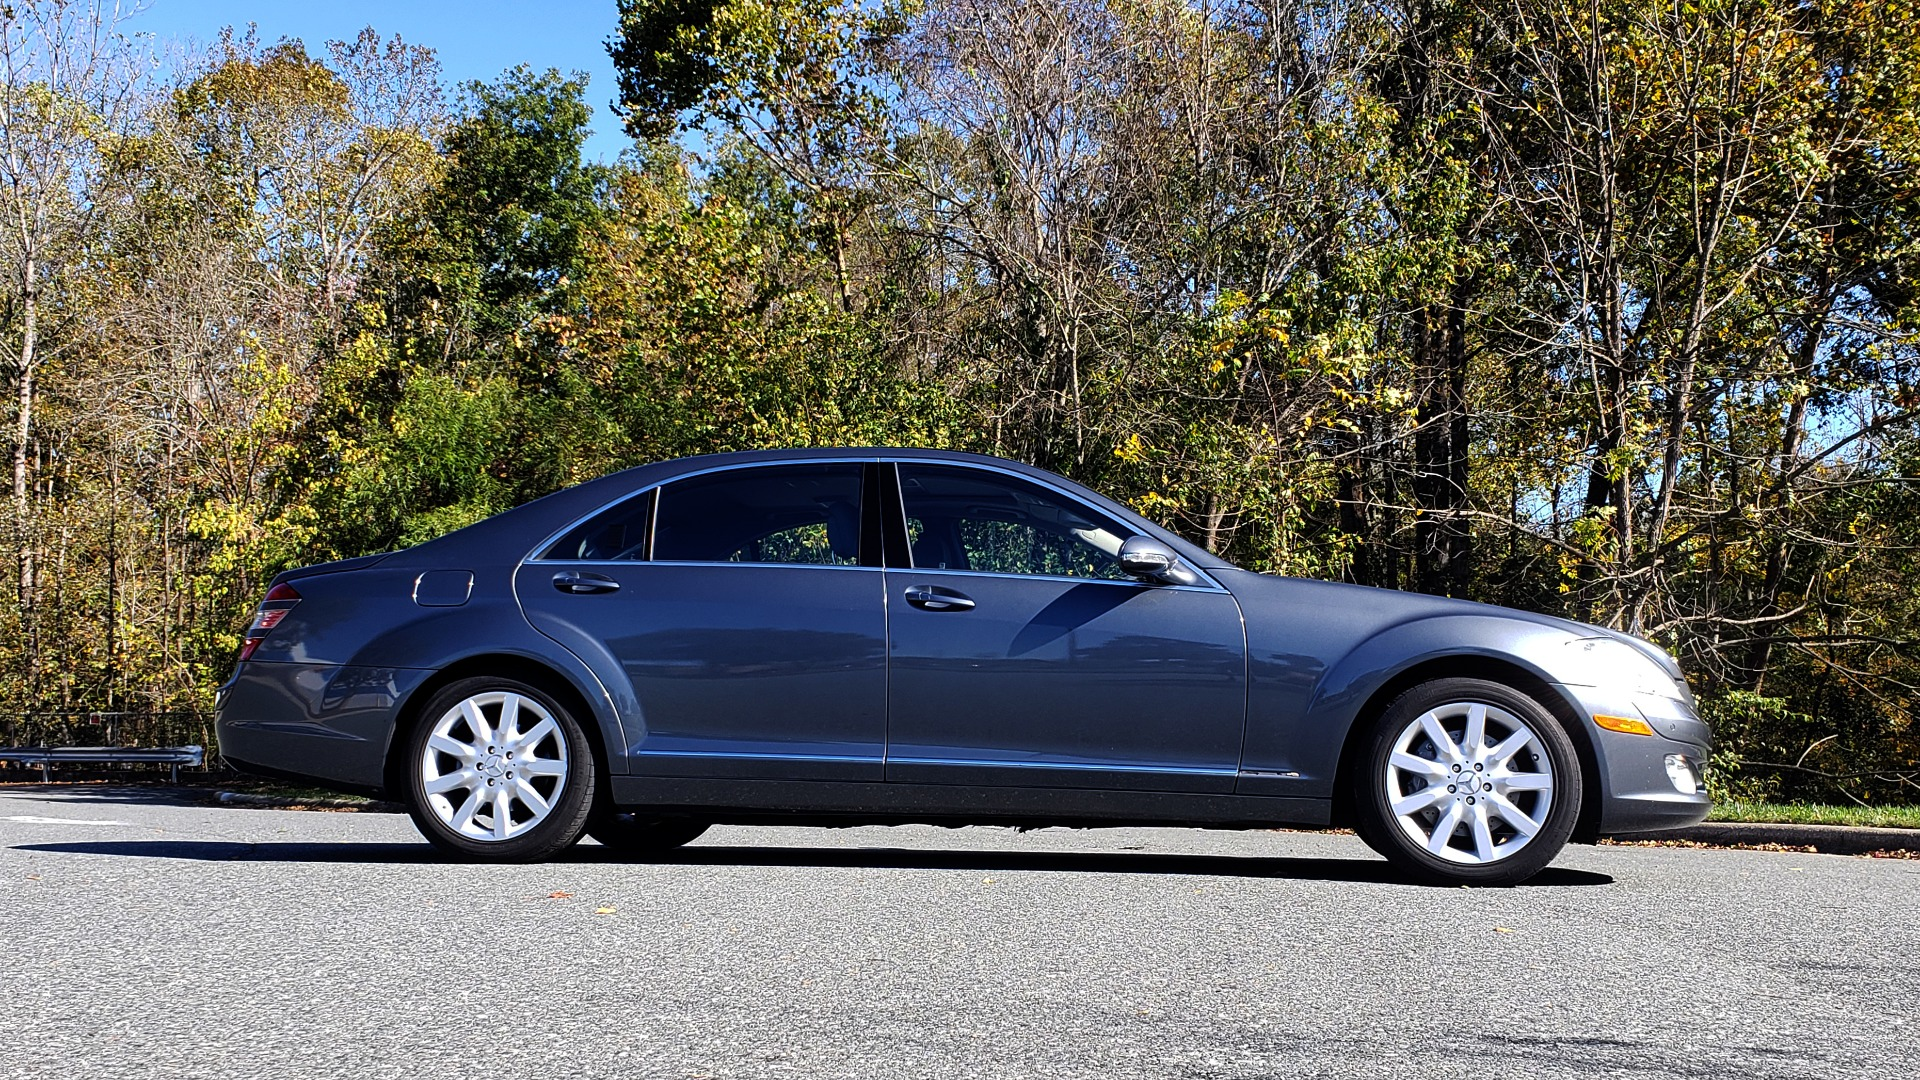 Used 2007 Mercedes-Benz S-CLASS S550 5.5L V8 / LWB / PREM 2 / NAV / SUNROOF / KEYLESS-GO for sale Sold at Formula Imports in Charlotte NC 28227 5